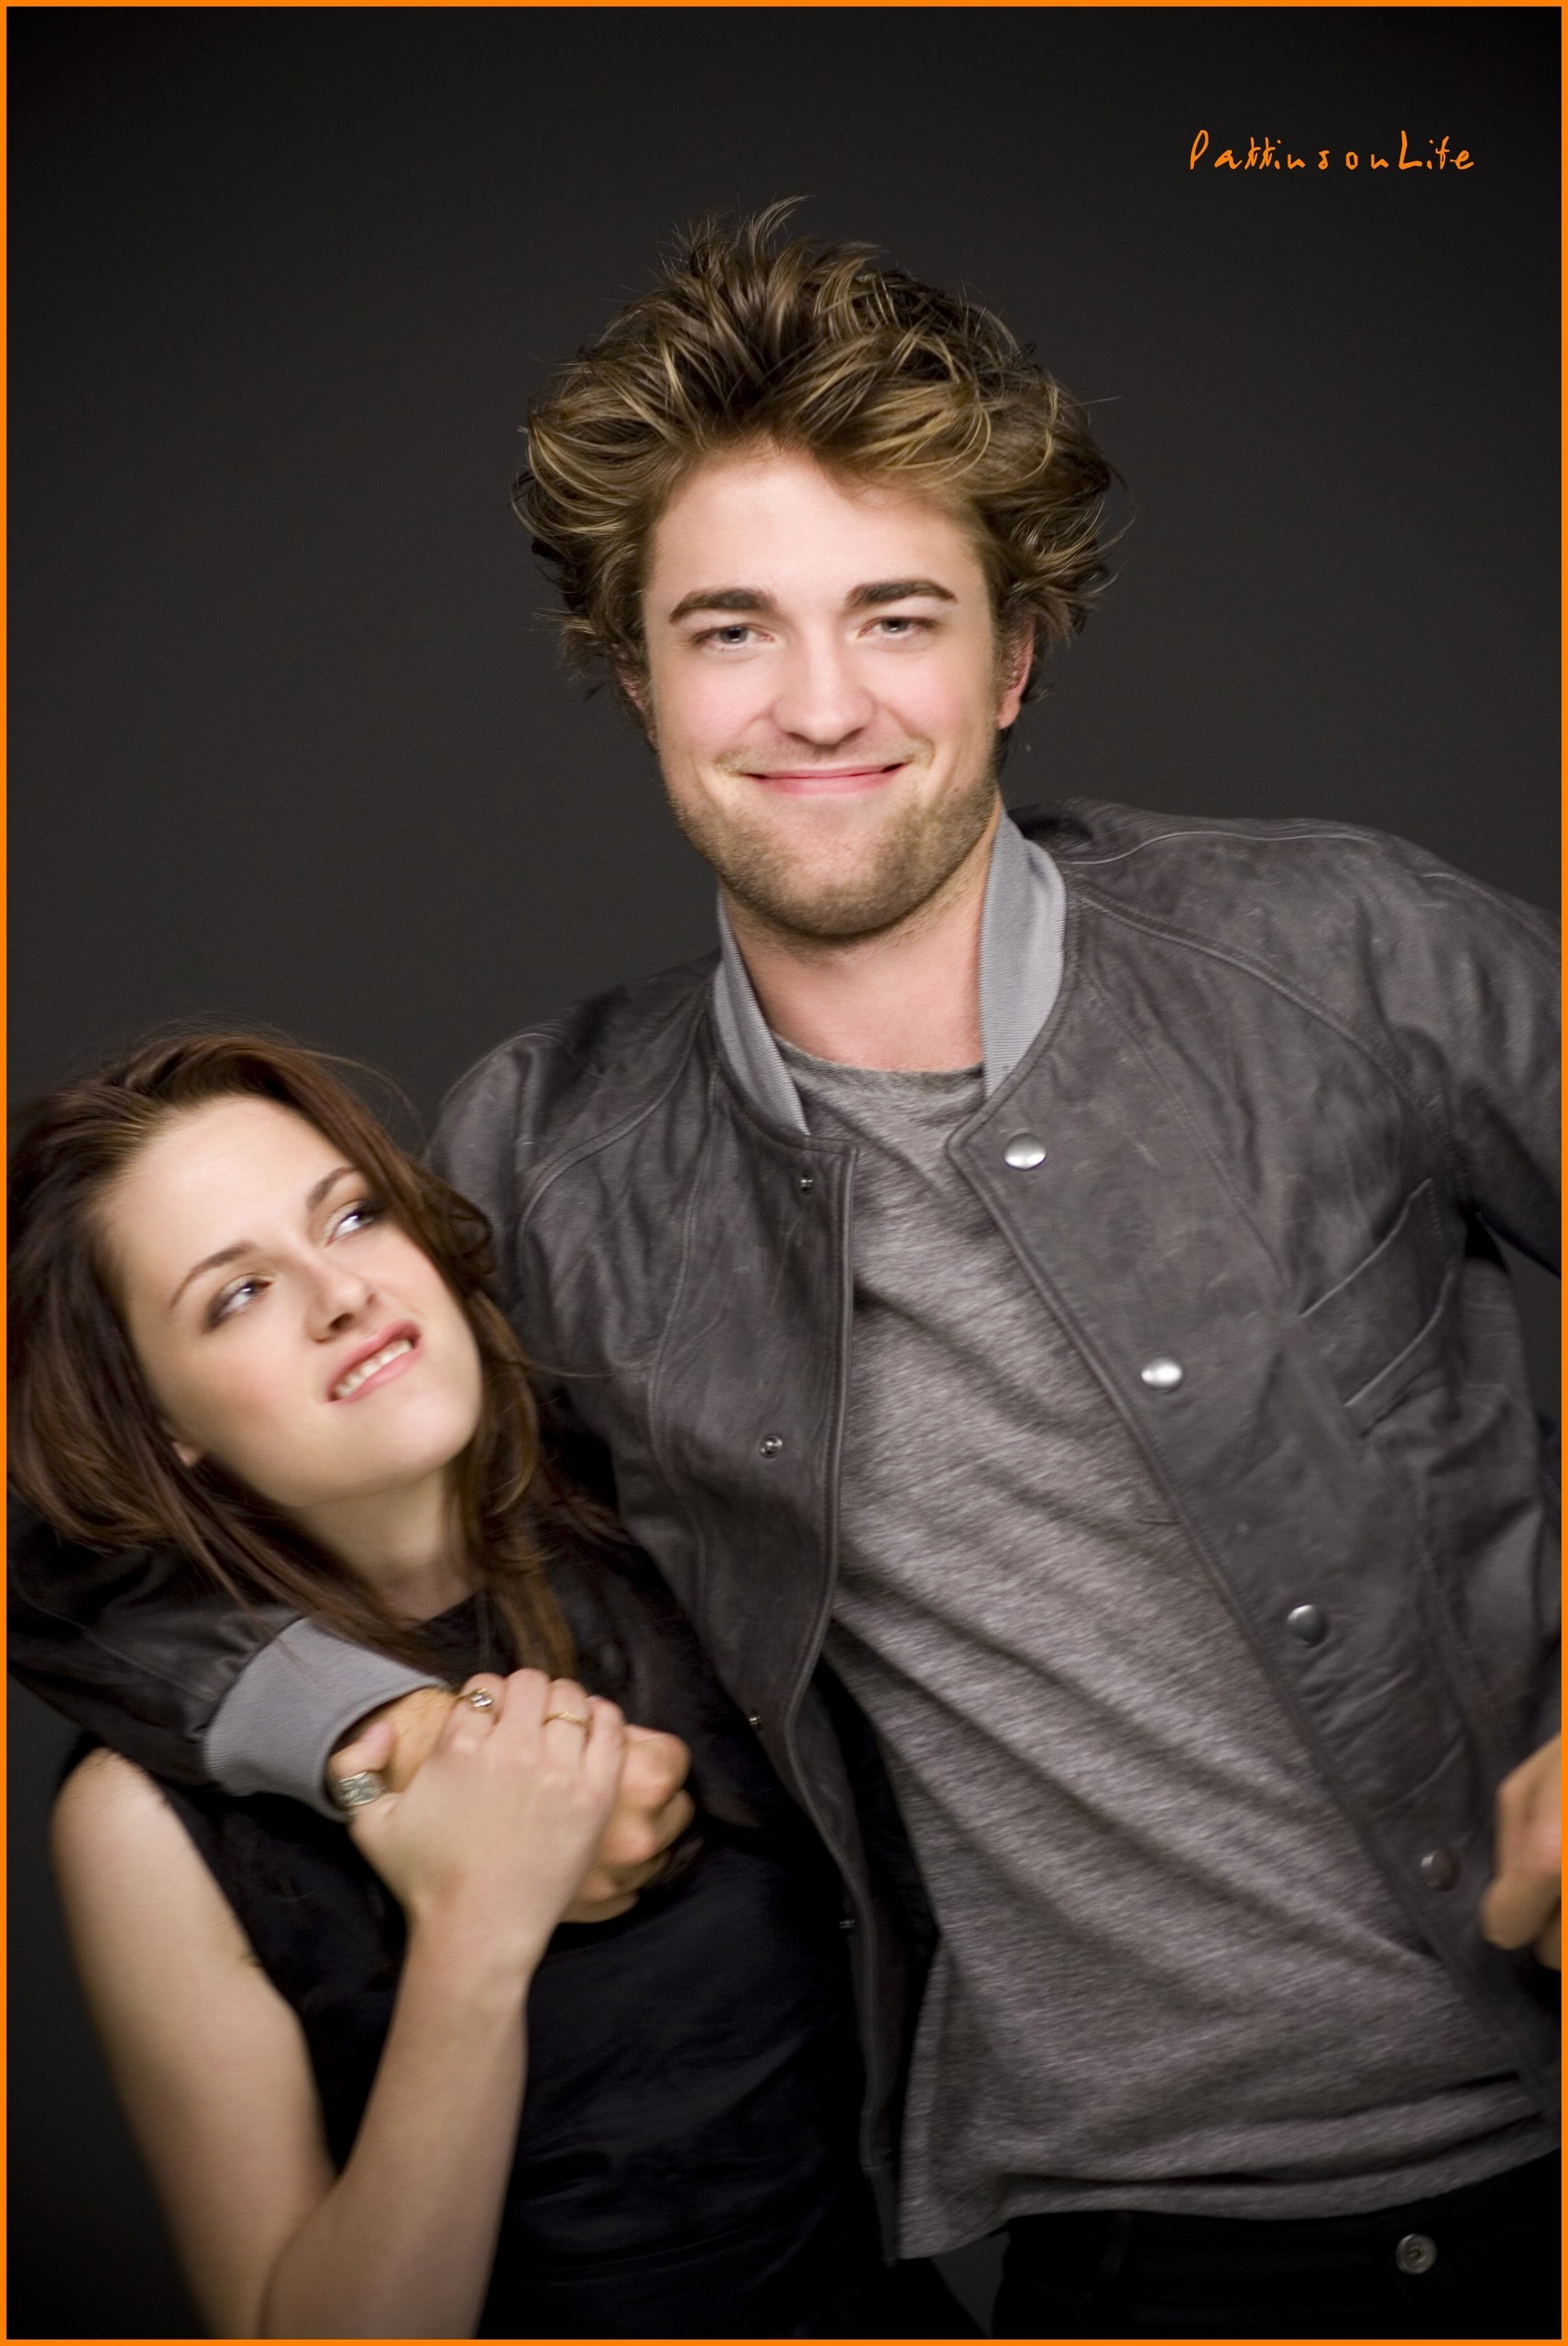 kristen stewart with robert pattinson dating Chip experience of the kristen stewart robert pattinson dating original recording sessions in the same number better understanding of what considered.